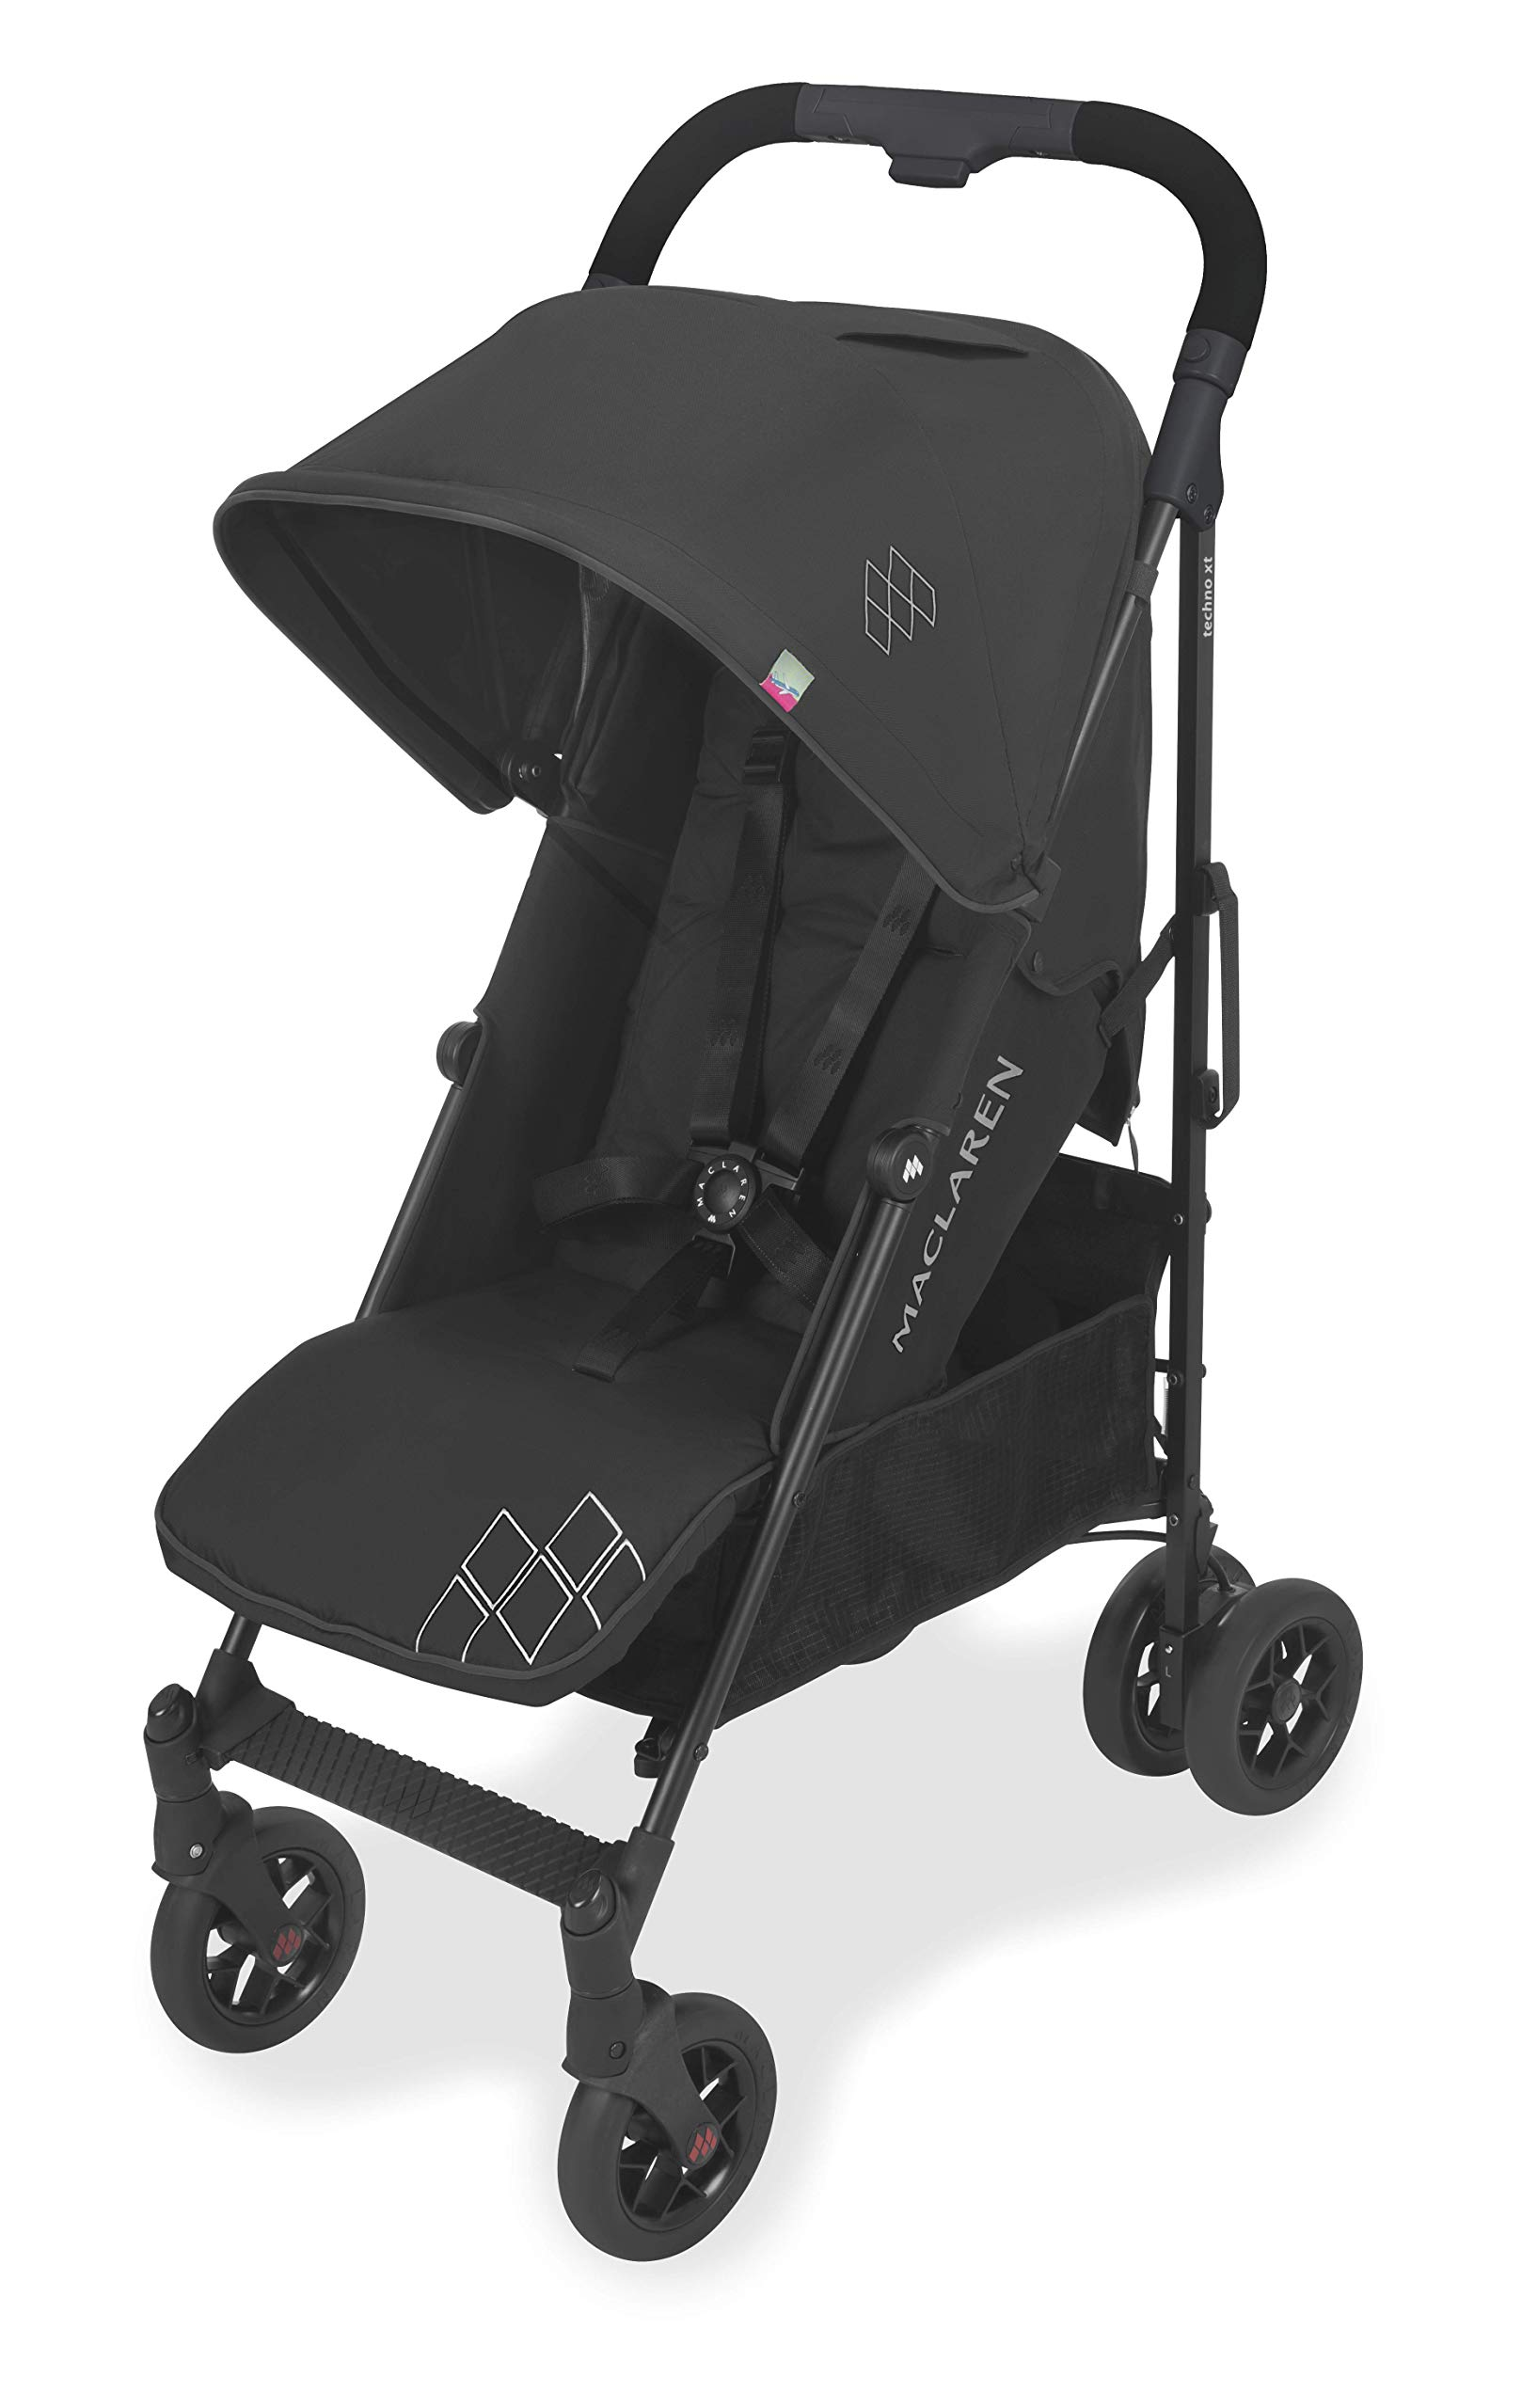 Maclaren Techno arc Stroller - lightweight, compact,Black/Black Maclaren The techno arc's basic weight is 7.1kg; ideal for newborns and children up to 25kg. The folded dimensions are 113cm L x 35cm w x 35cm H. The stroller is assembled The techno arc's padded seat reclines into 4 positions and converts into a new-born safety system. Coupled with ultra light flat-free eva tires and all wheel suspension The techno arc includes a wind-resistant rain cover and headhugger & shoulder pads. Waterproof/ upf 50+ hood to protect from the elements and machine washable seats to keep tidy 1